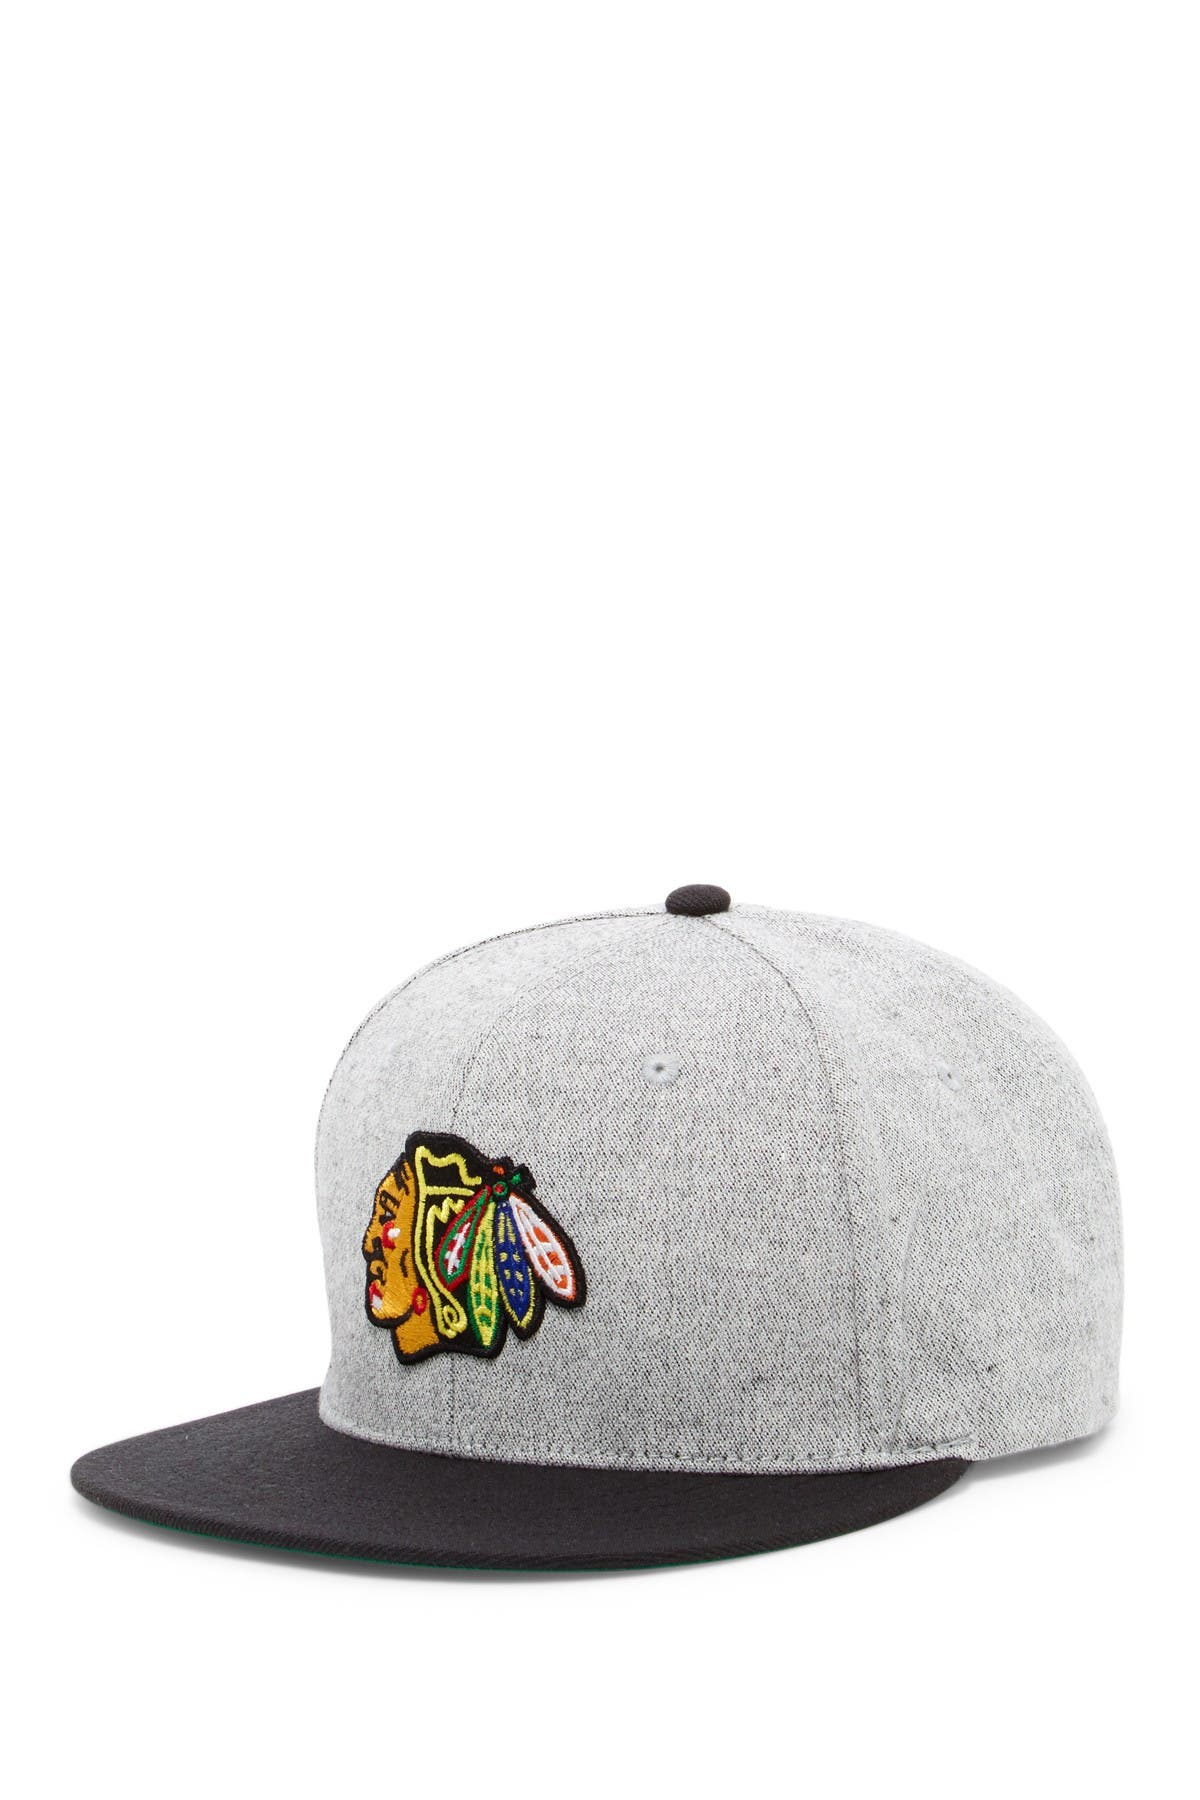 Image of American Needle NHL Chicago Blackhawks Castle Rock Baseball Cap